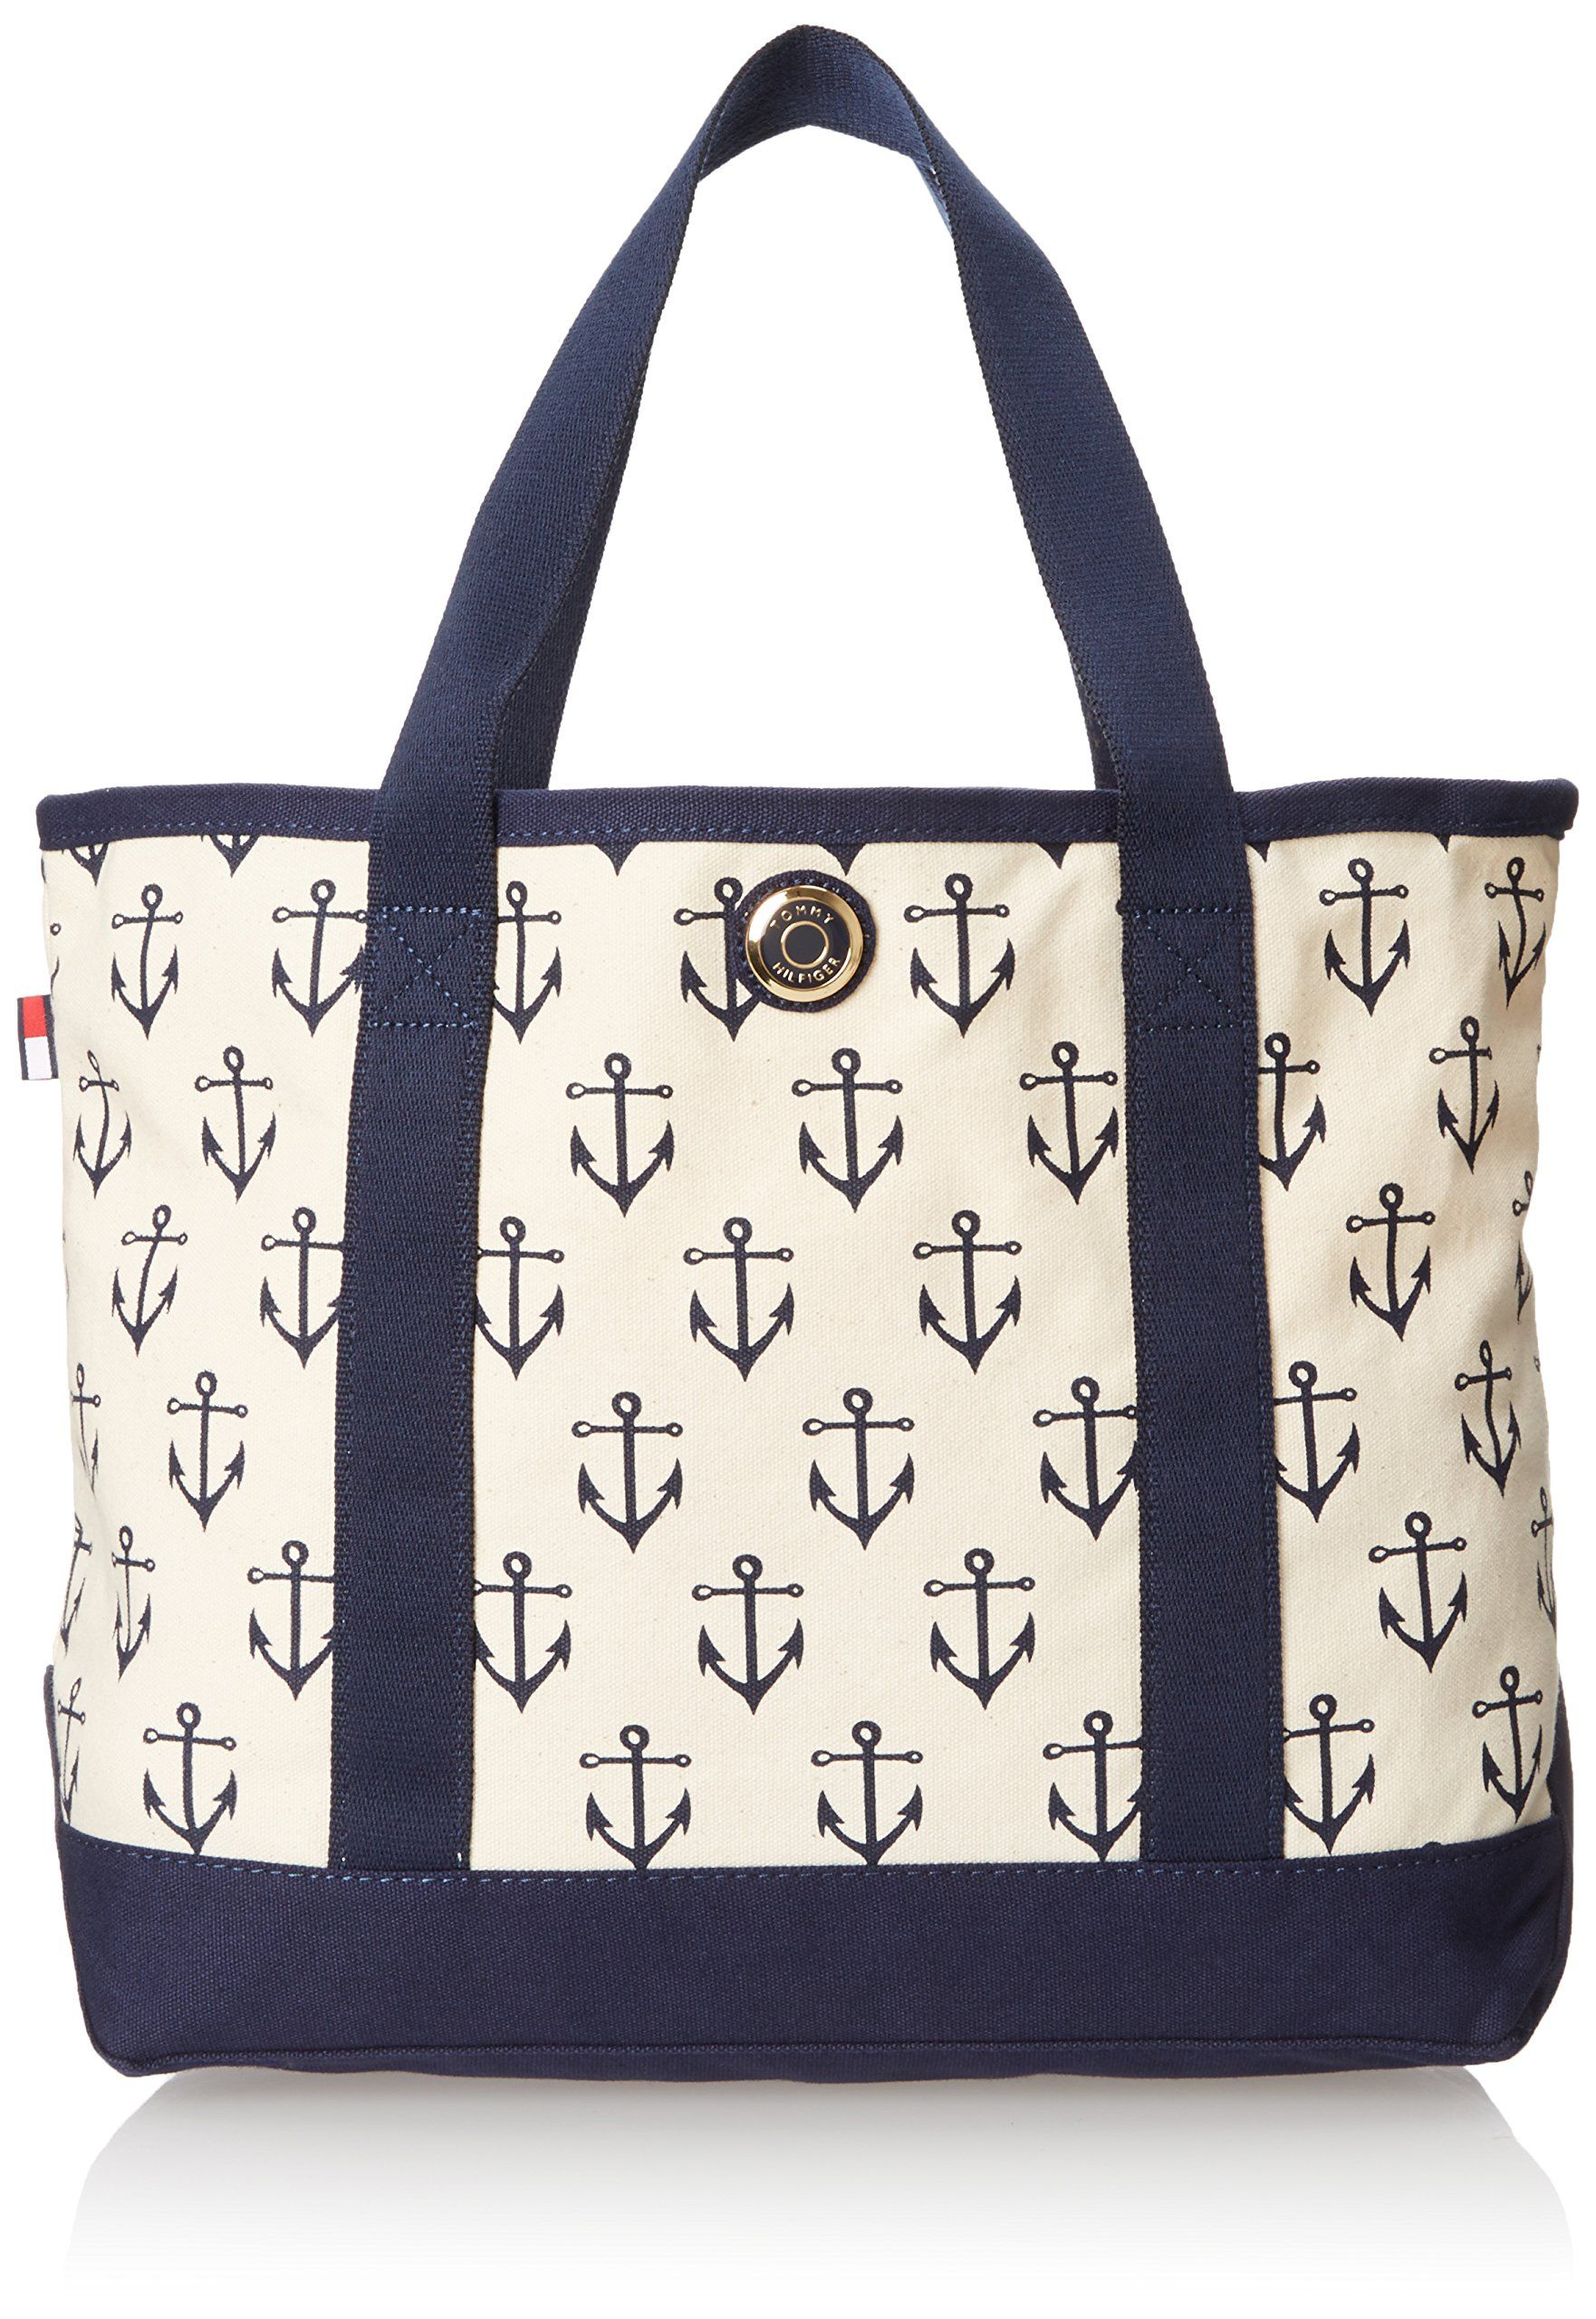 f510472db15 Tommy Hilfiger Canvas Anchor Print Large Shoulder Bag, Navy/Natural, One  Size